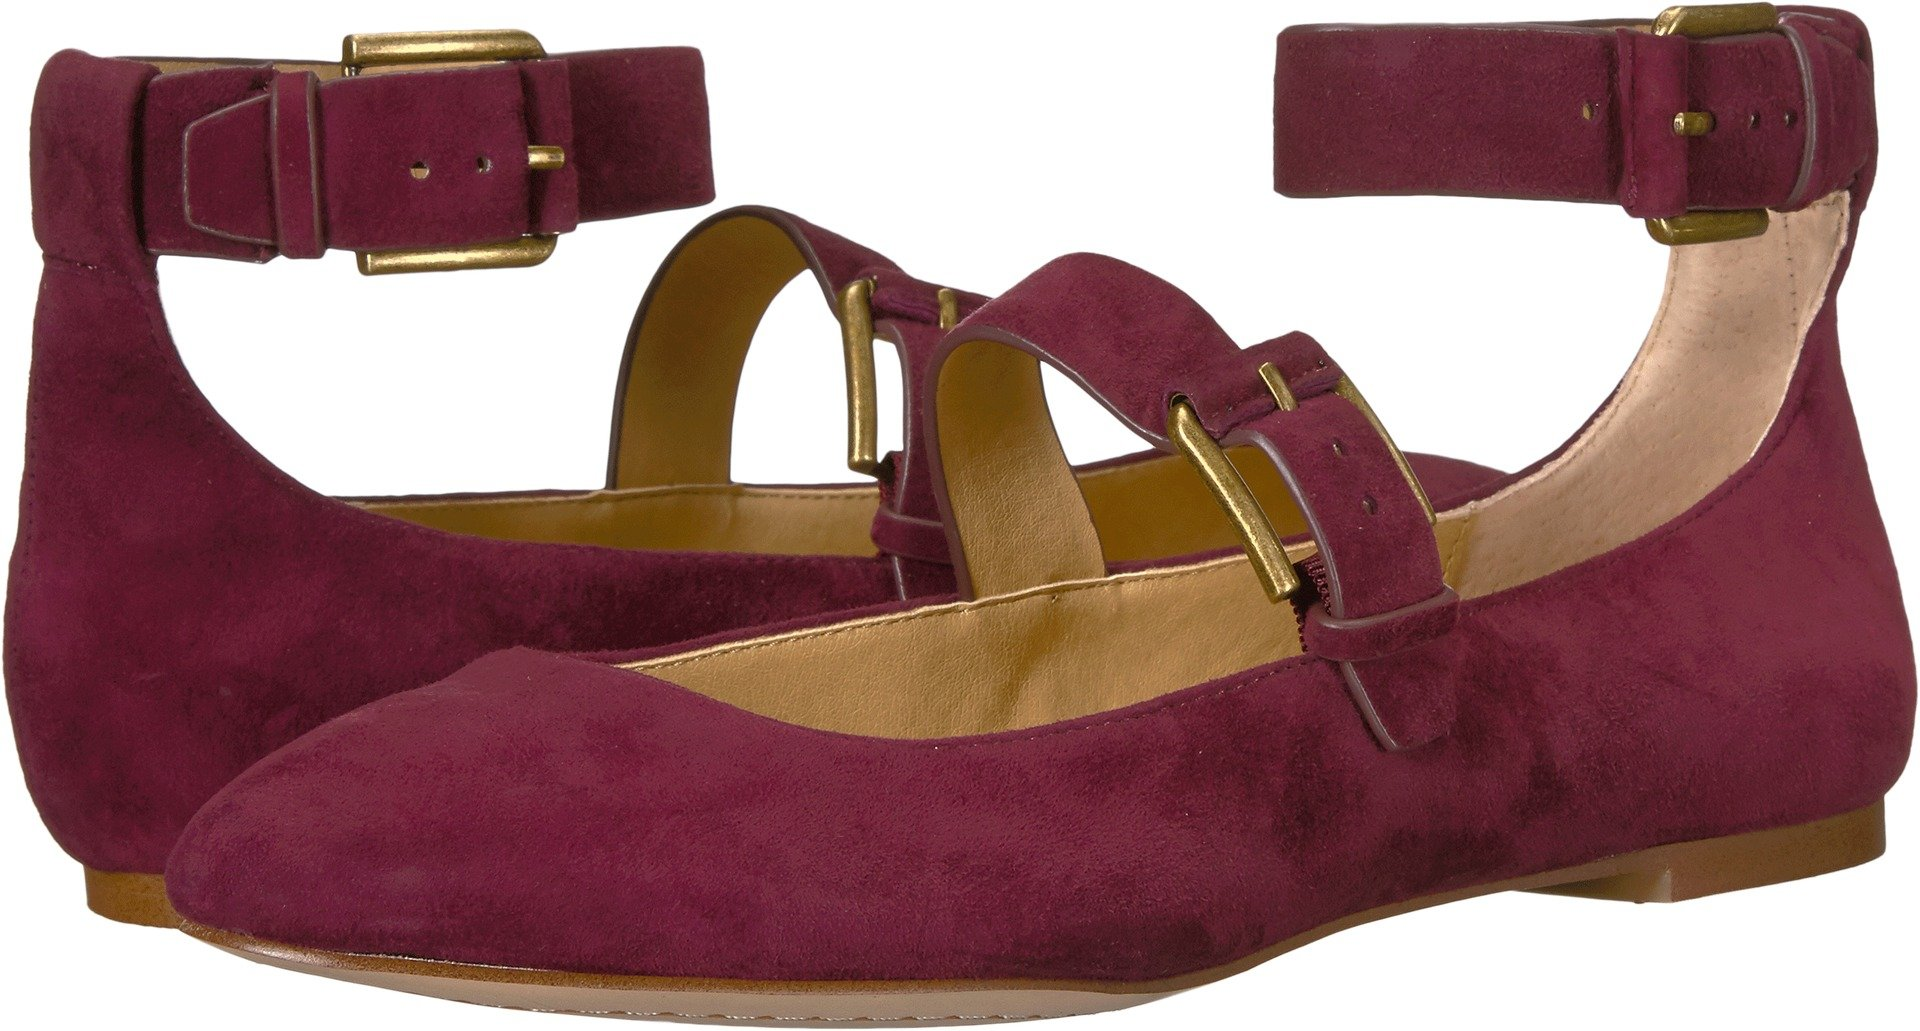 Splendid Women's Dalenna Mary Jane Flat, Wine, 7.5 Medium US